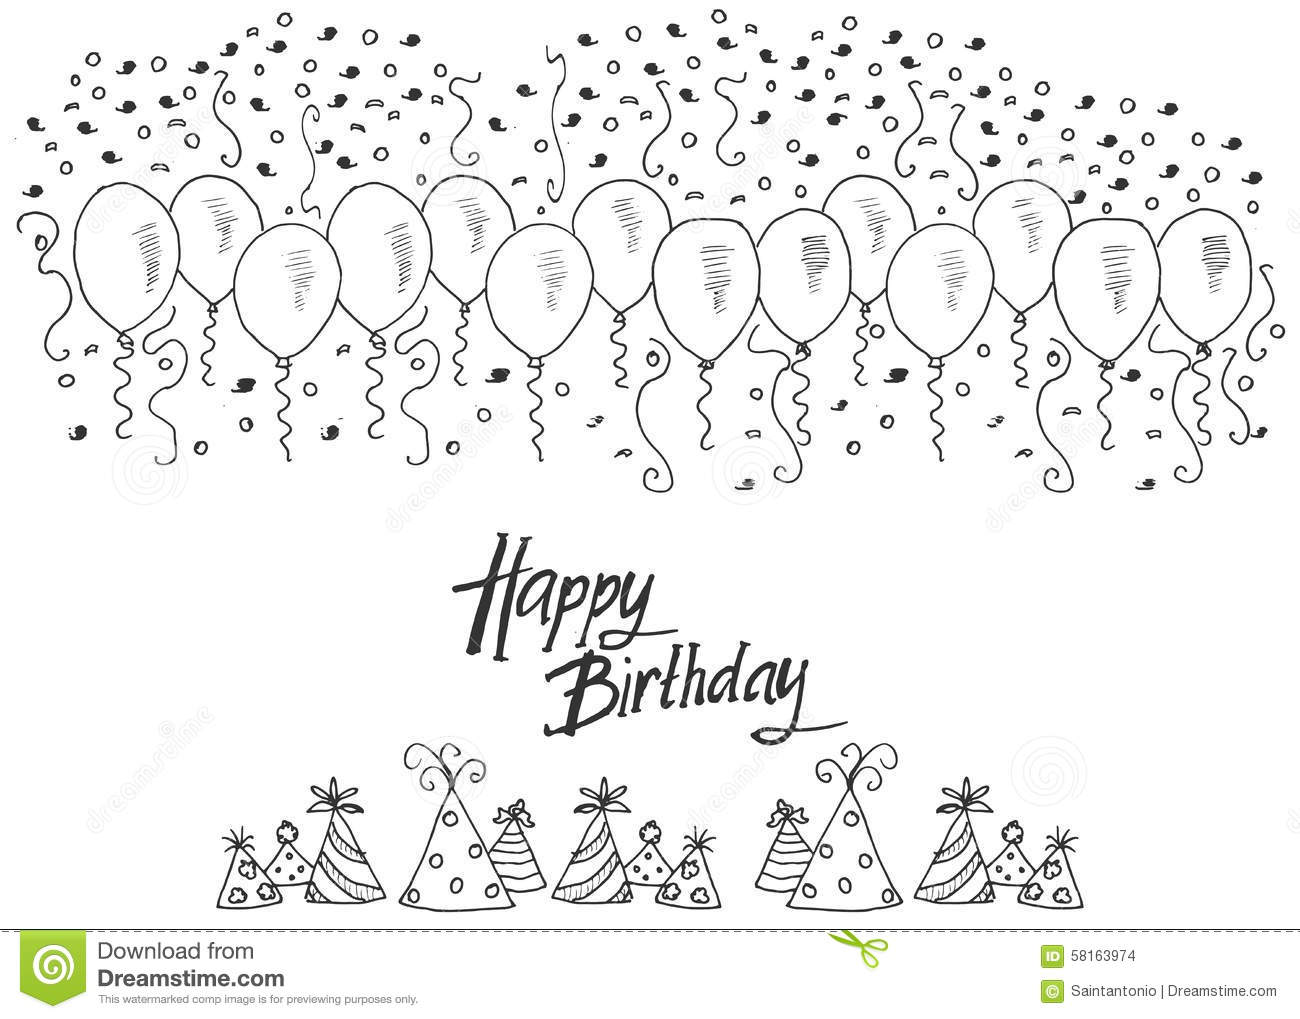 besides Drawingshandlettering together with Sailor Hat Anchor Symbol Drawing 1220115 further Stock Illustration Hand Drawn Party Background Balloons Confetti Party Hats Hand Writen Lettering Text Happy Birthday Isolated White Image58163974 as well Coloring Birthday Cake. on happy birthday doodle